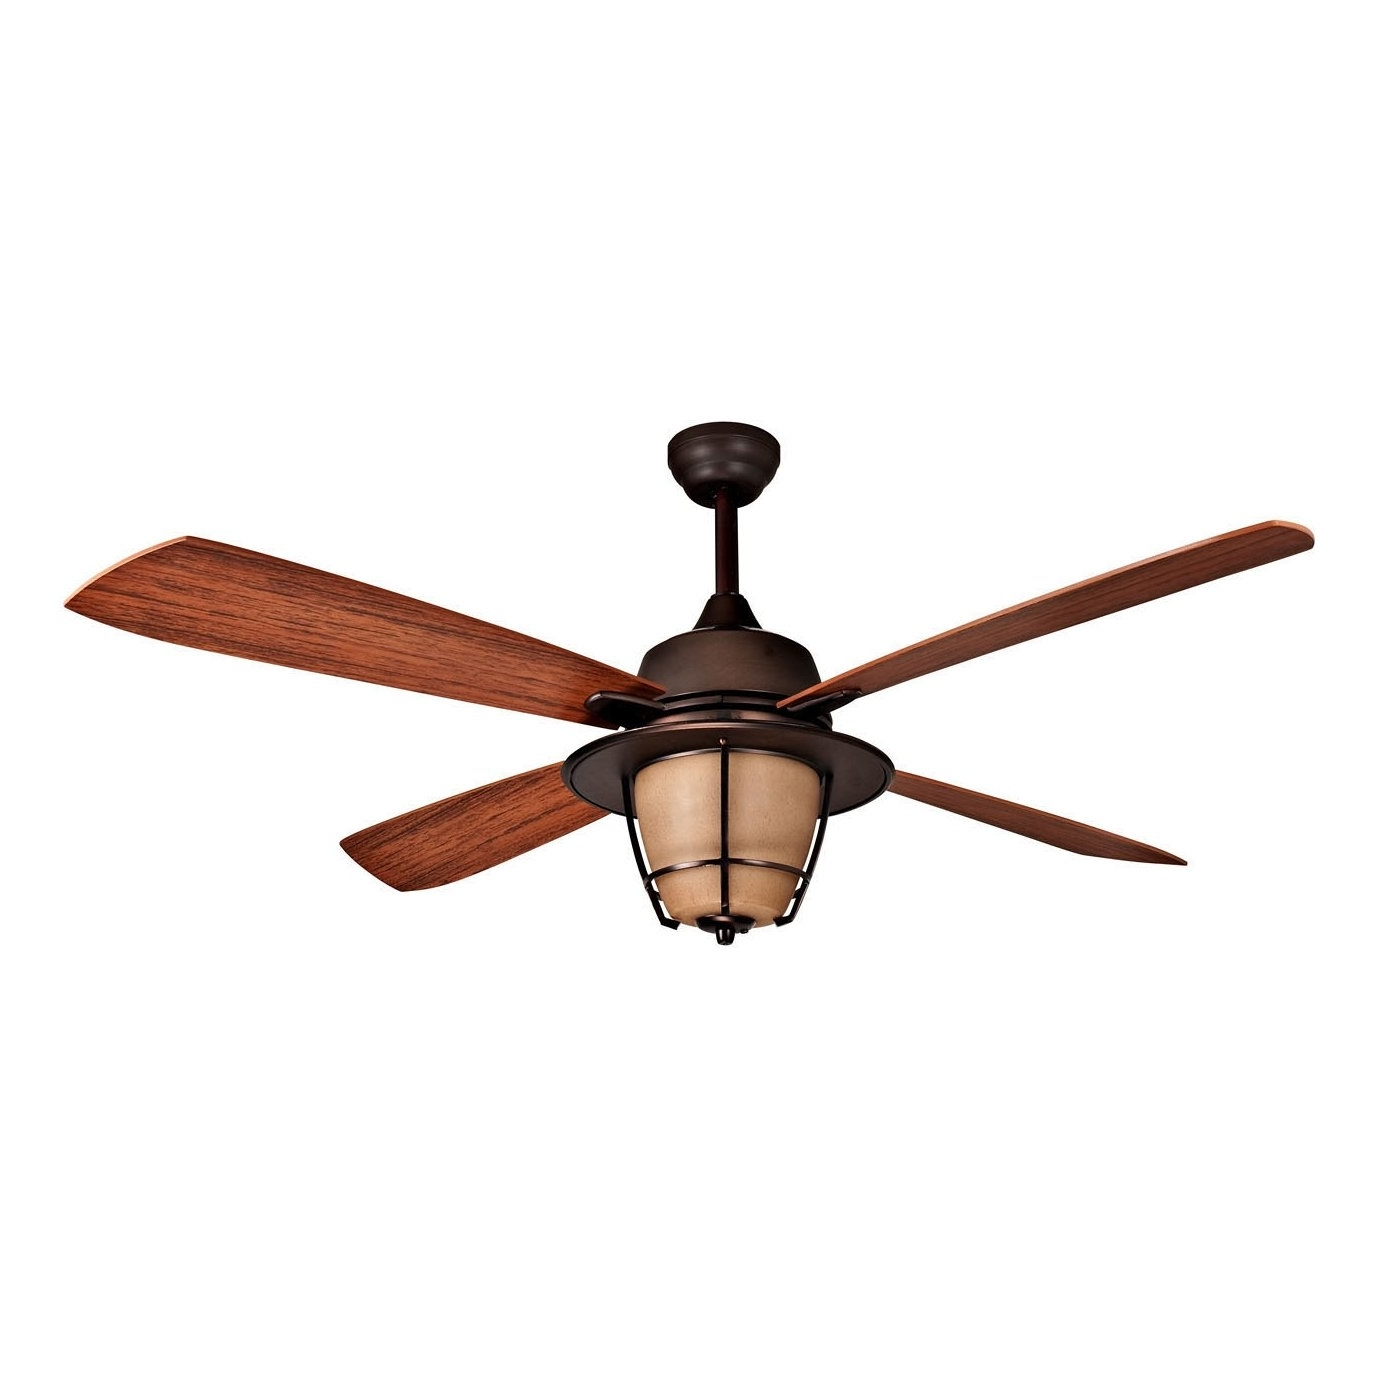 Contemporary Outdoor Ceiling Fans In Recent Ceiling Lights : Archaic Exterior Ceiling Fans , Outdoor Ceiling Fans (View 5 of 20)